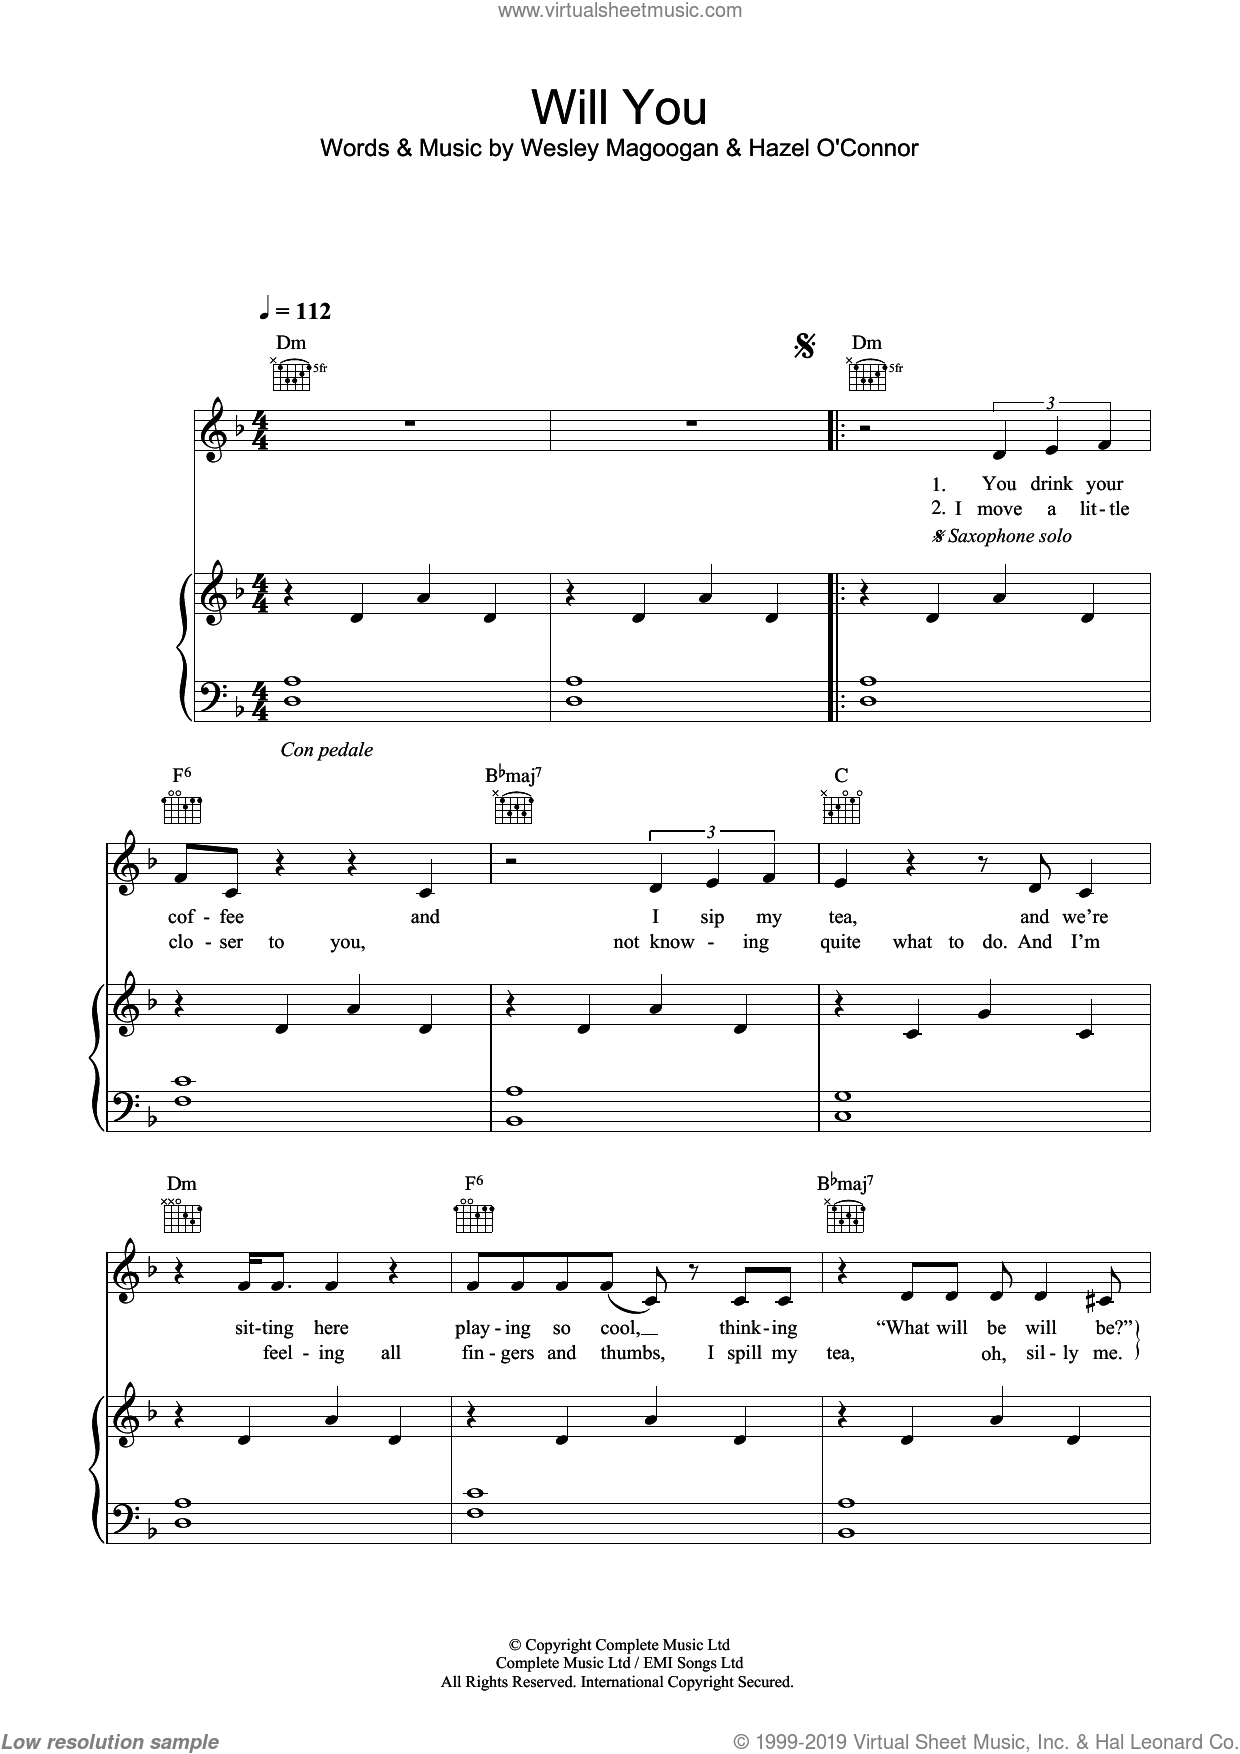 Will You sheet music for voice, piano or guitar by Wesley Magoogan